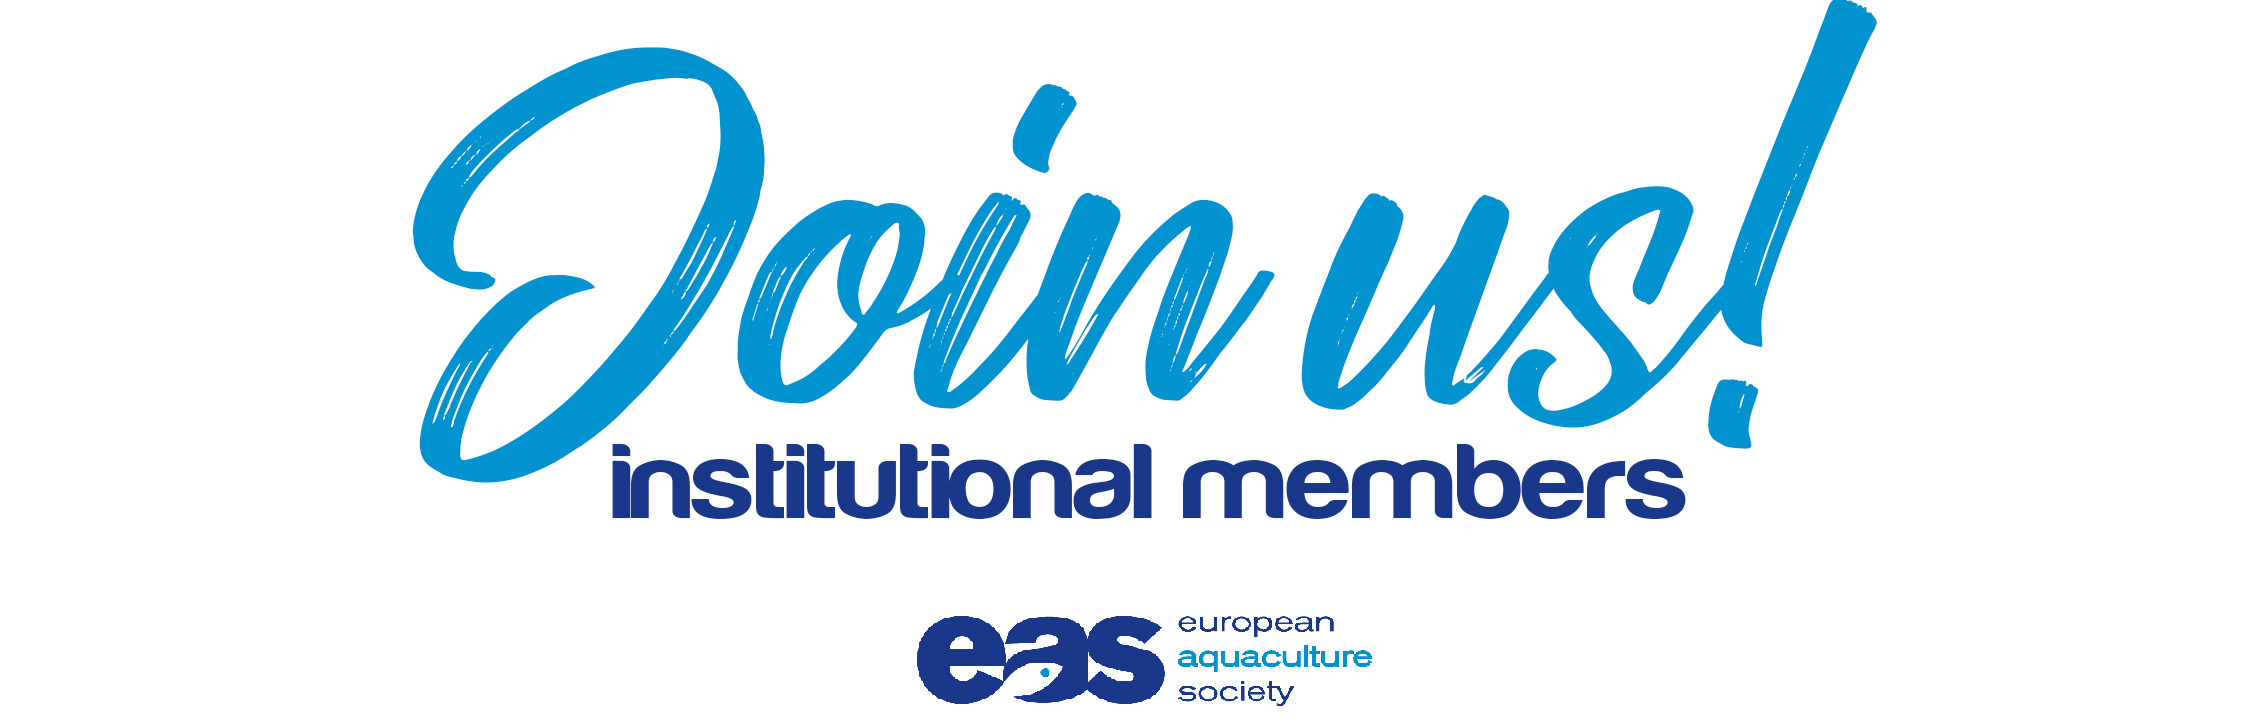 JoinUs institutional members Banner